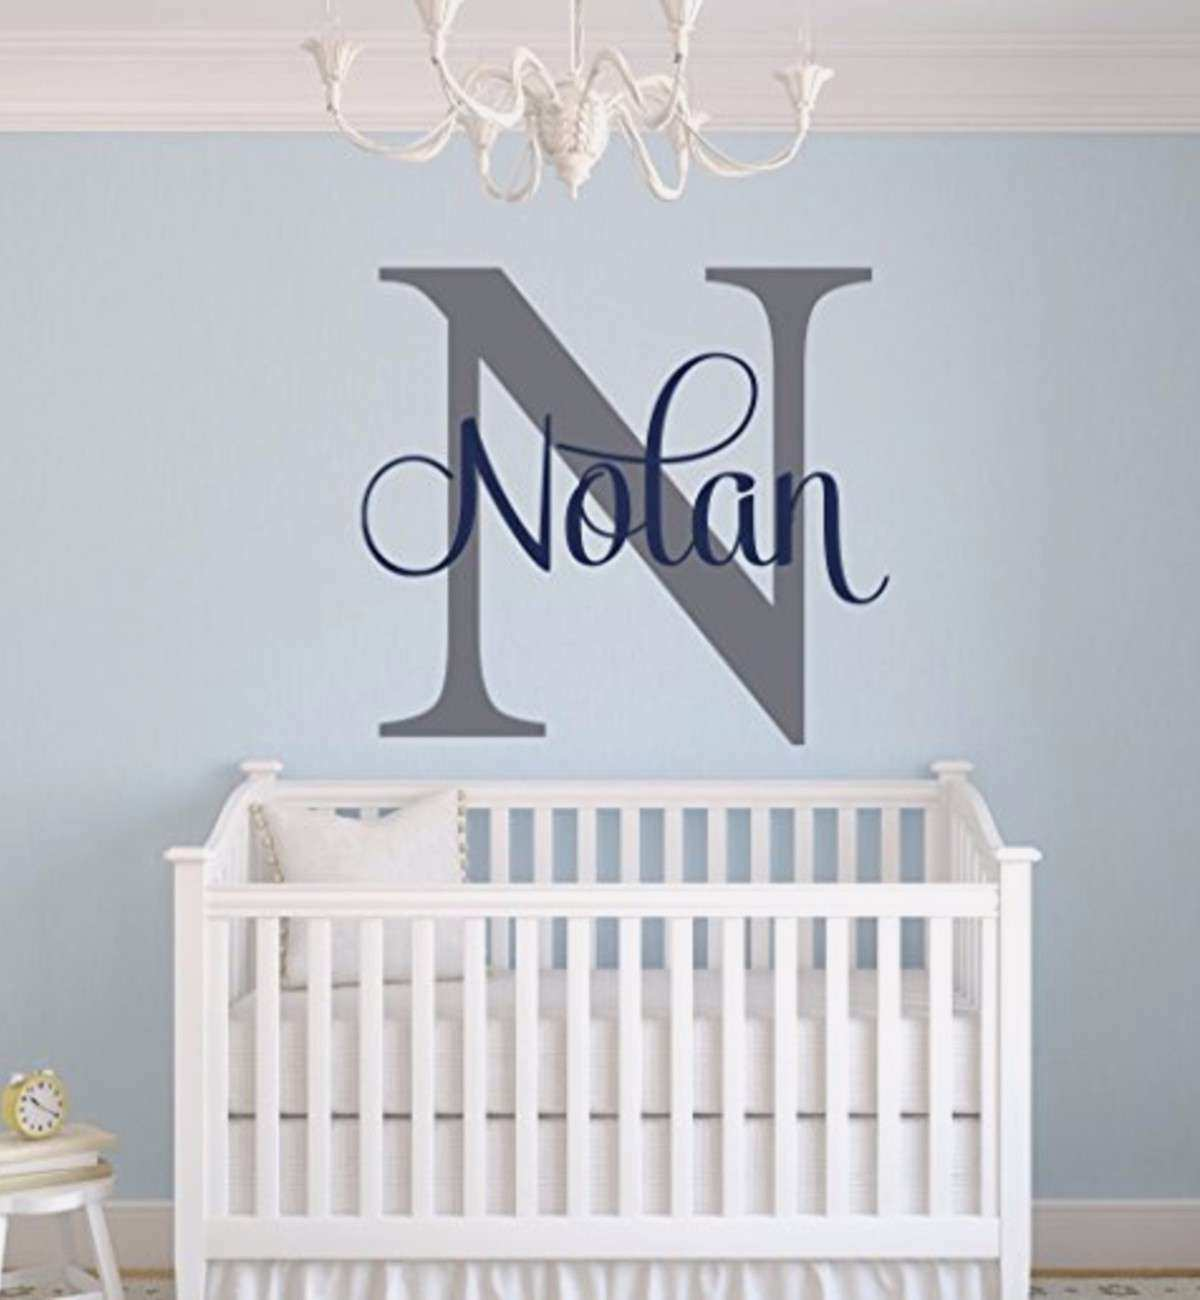 Baby Boy Nursery Wall Decor Ideas Best Idea Garden